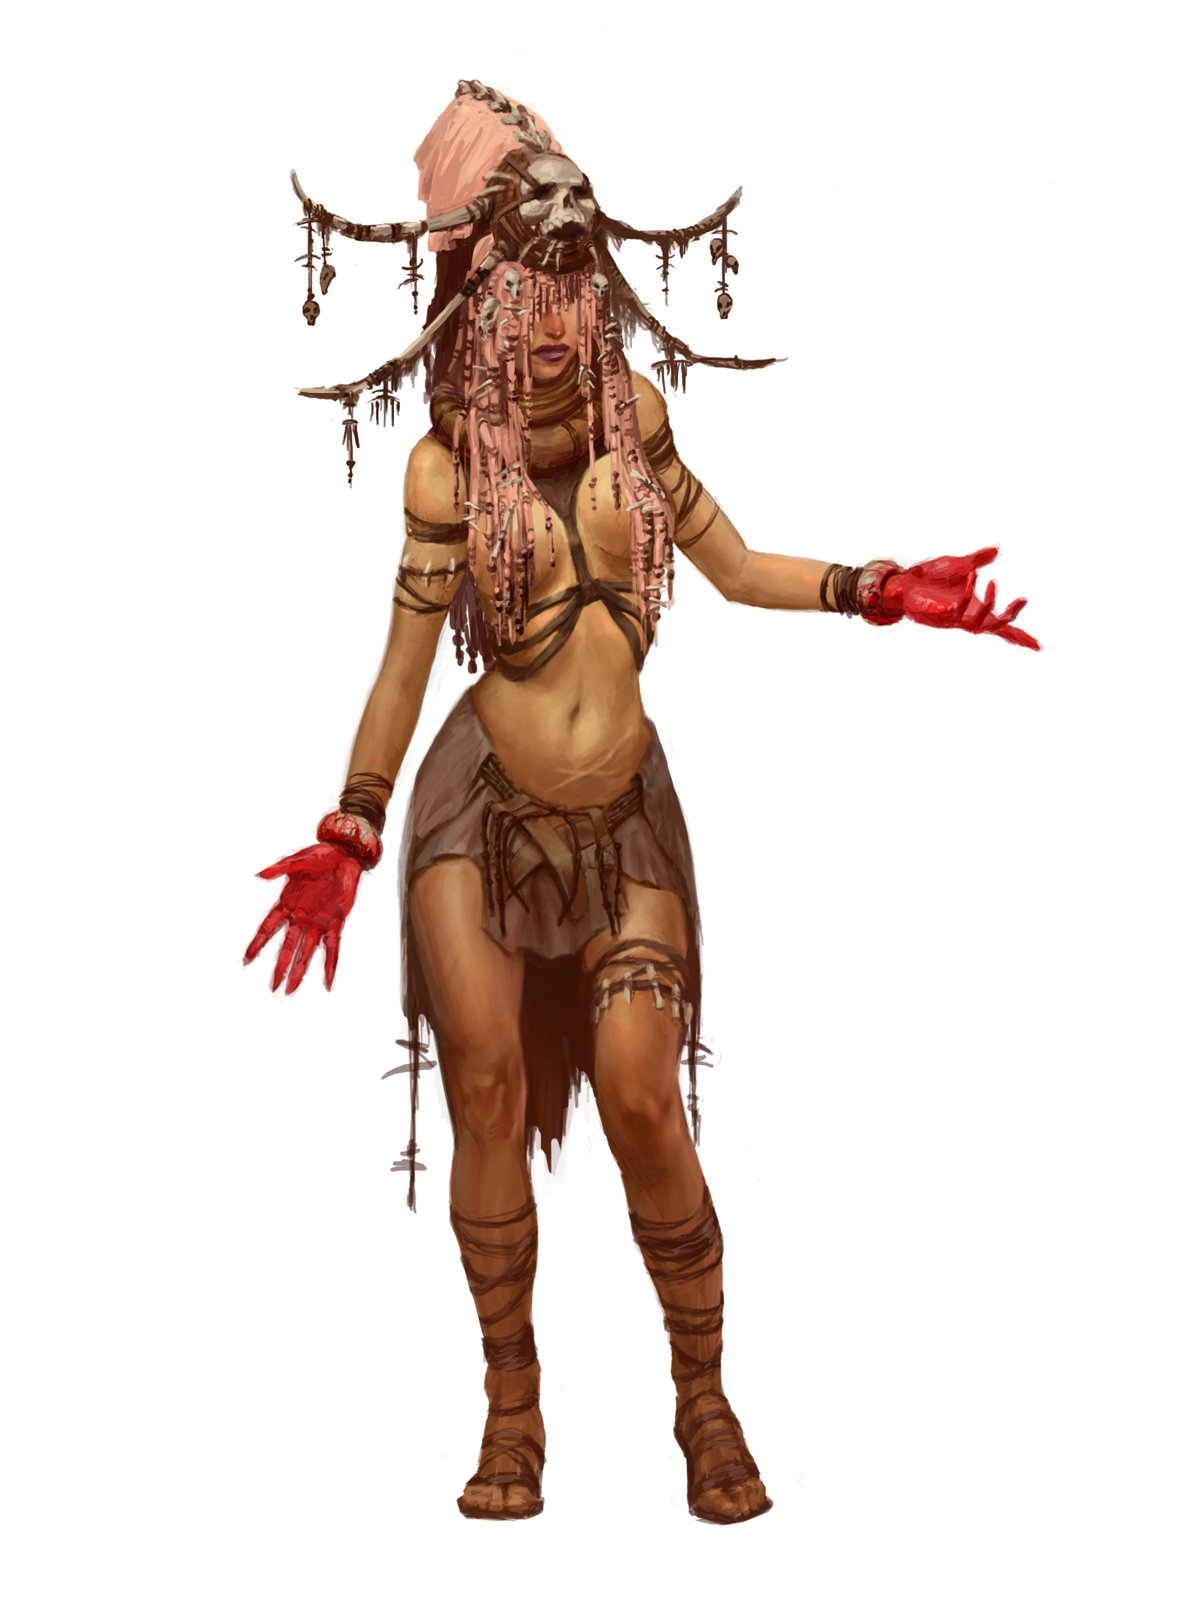 Concept artwork from Gauntlet: Seven Sorrows. (Imagery courtesy of John Romero.)